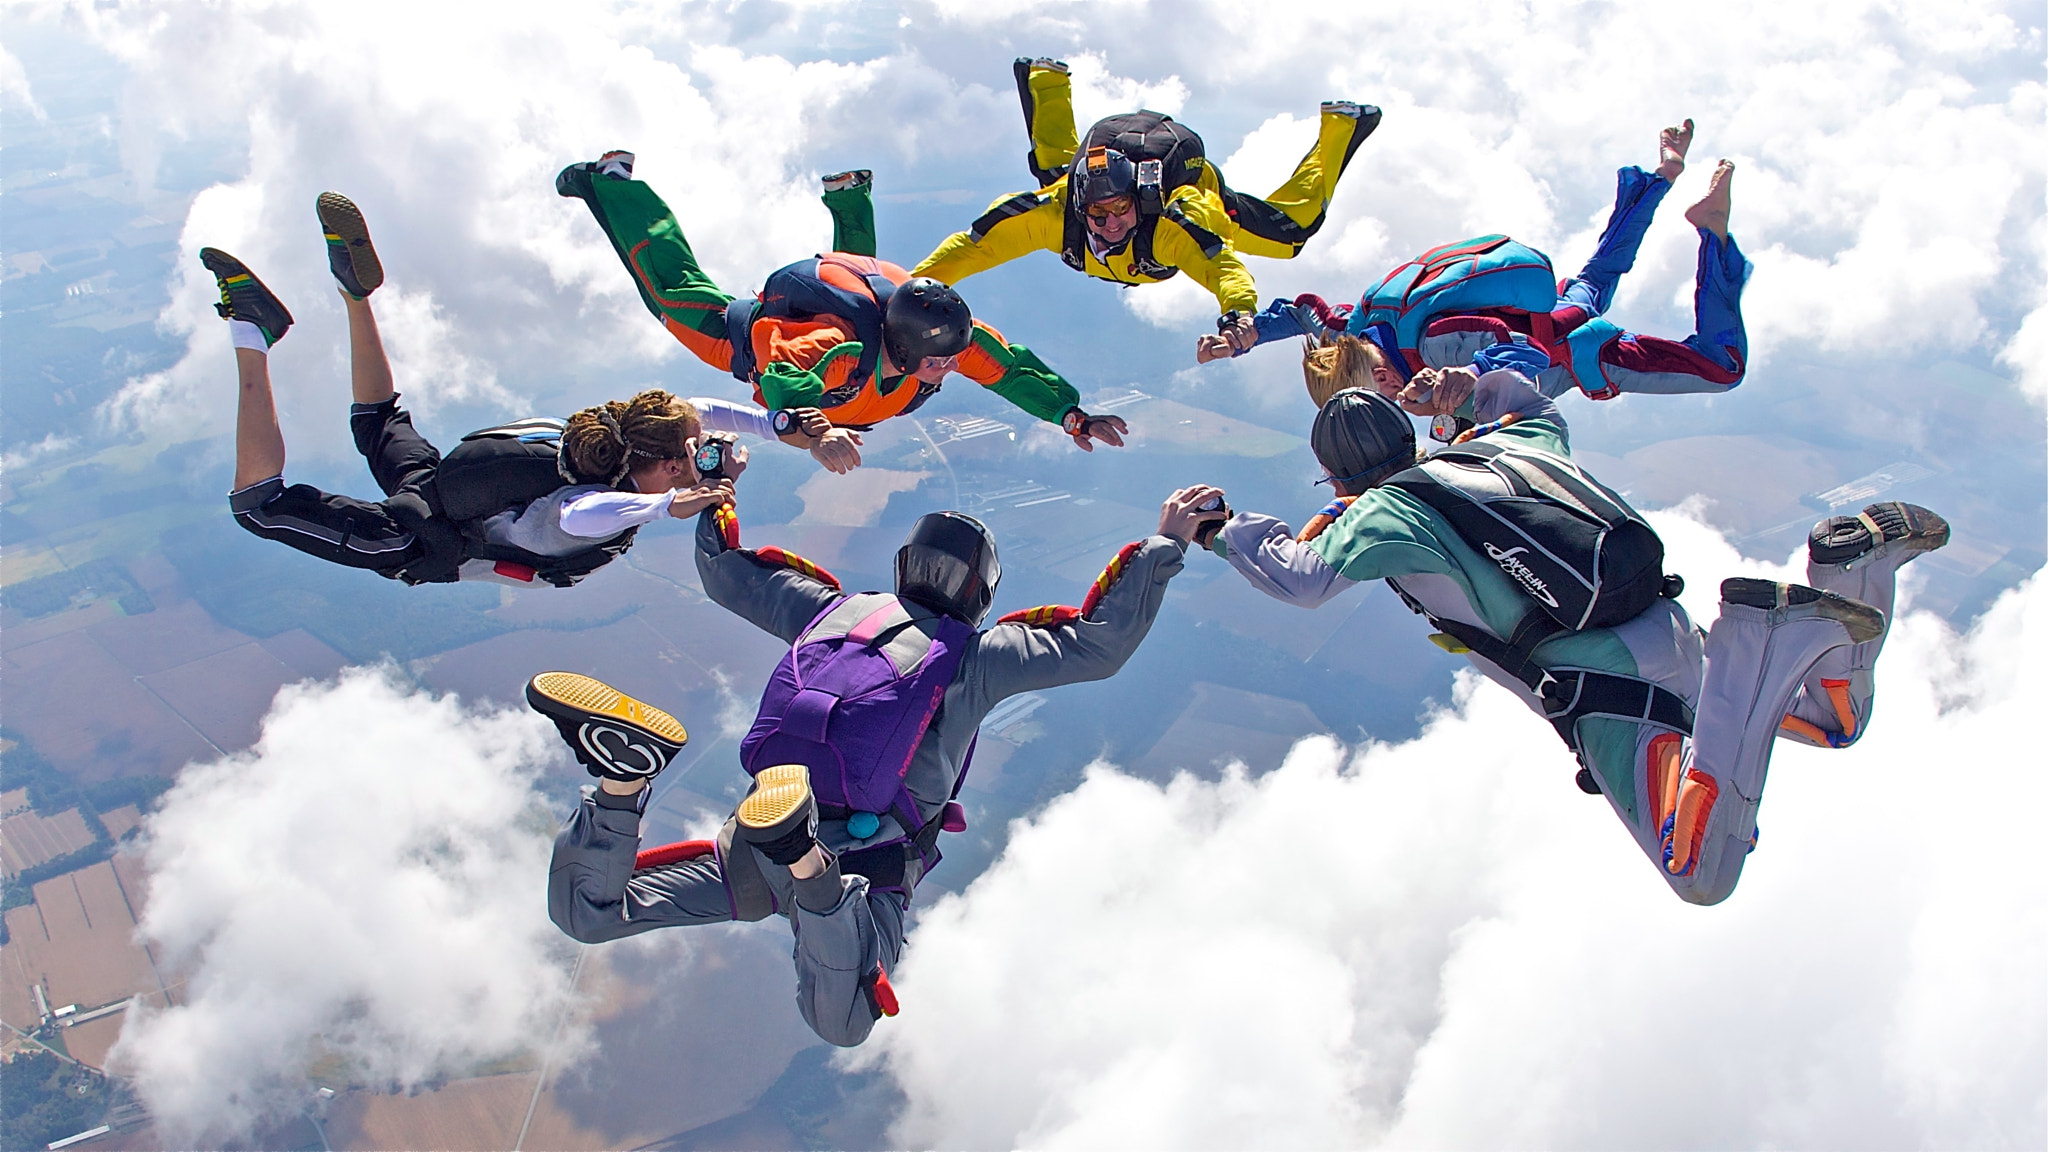 Photograph 8888th jump by Kevin Grishkot on 500px